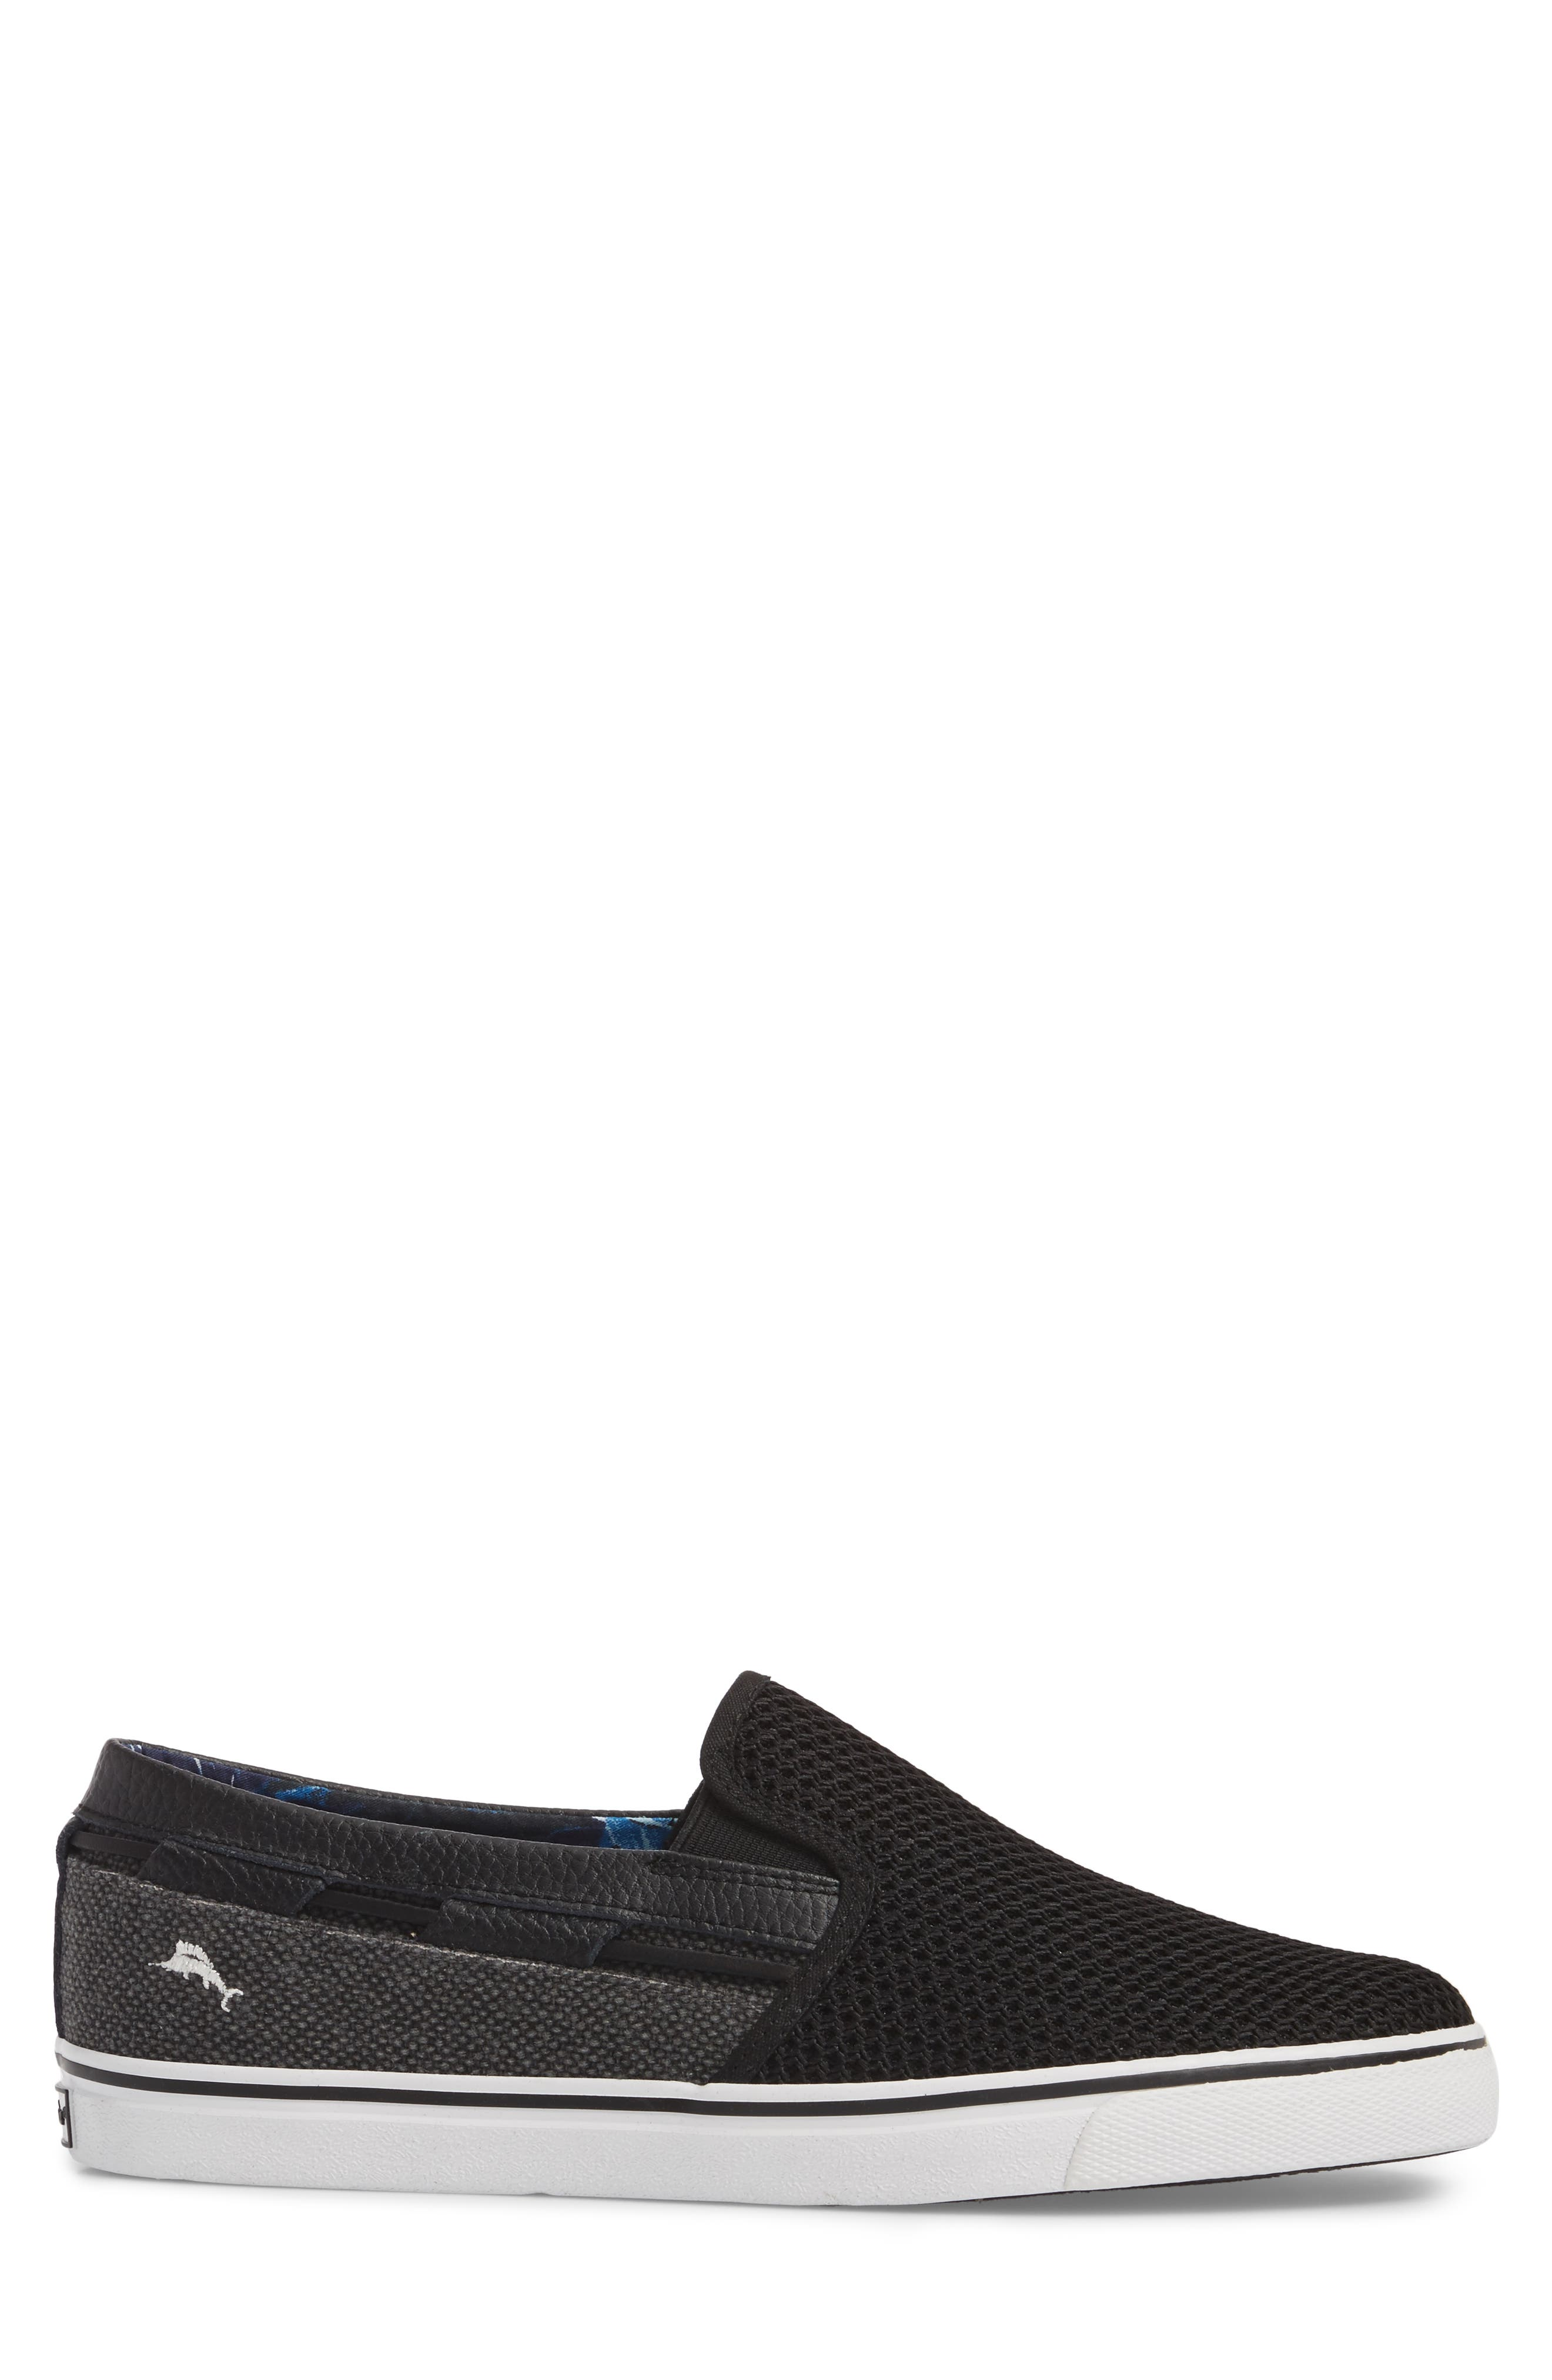 Exodus Mesh Slip-On Sneaker,                             Alternate thumbnail 3, color,                             BLACK MESH/ TEXTILE